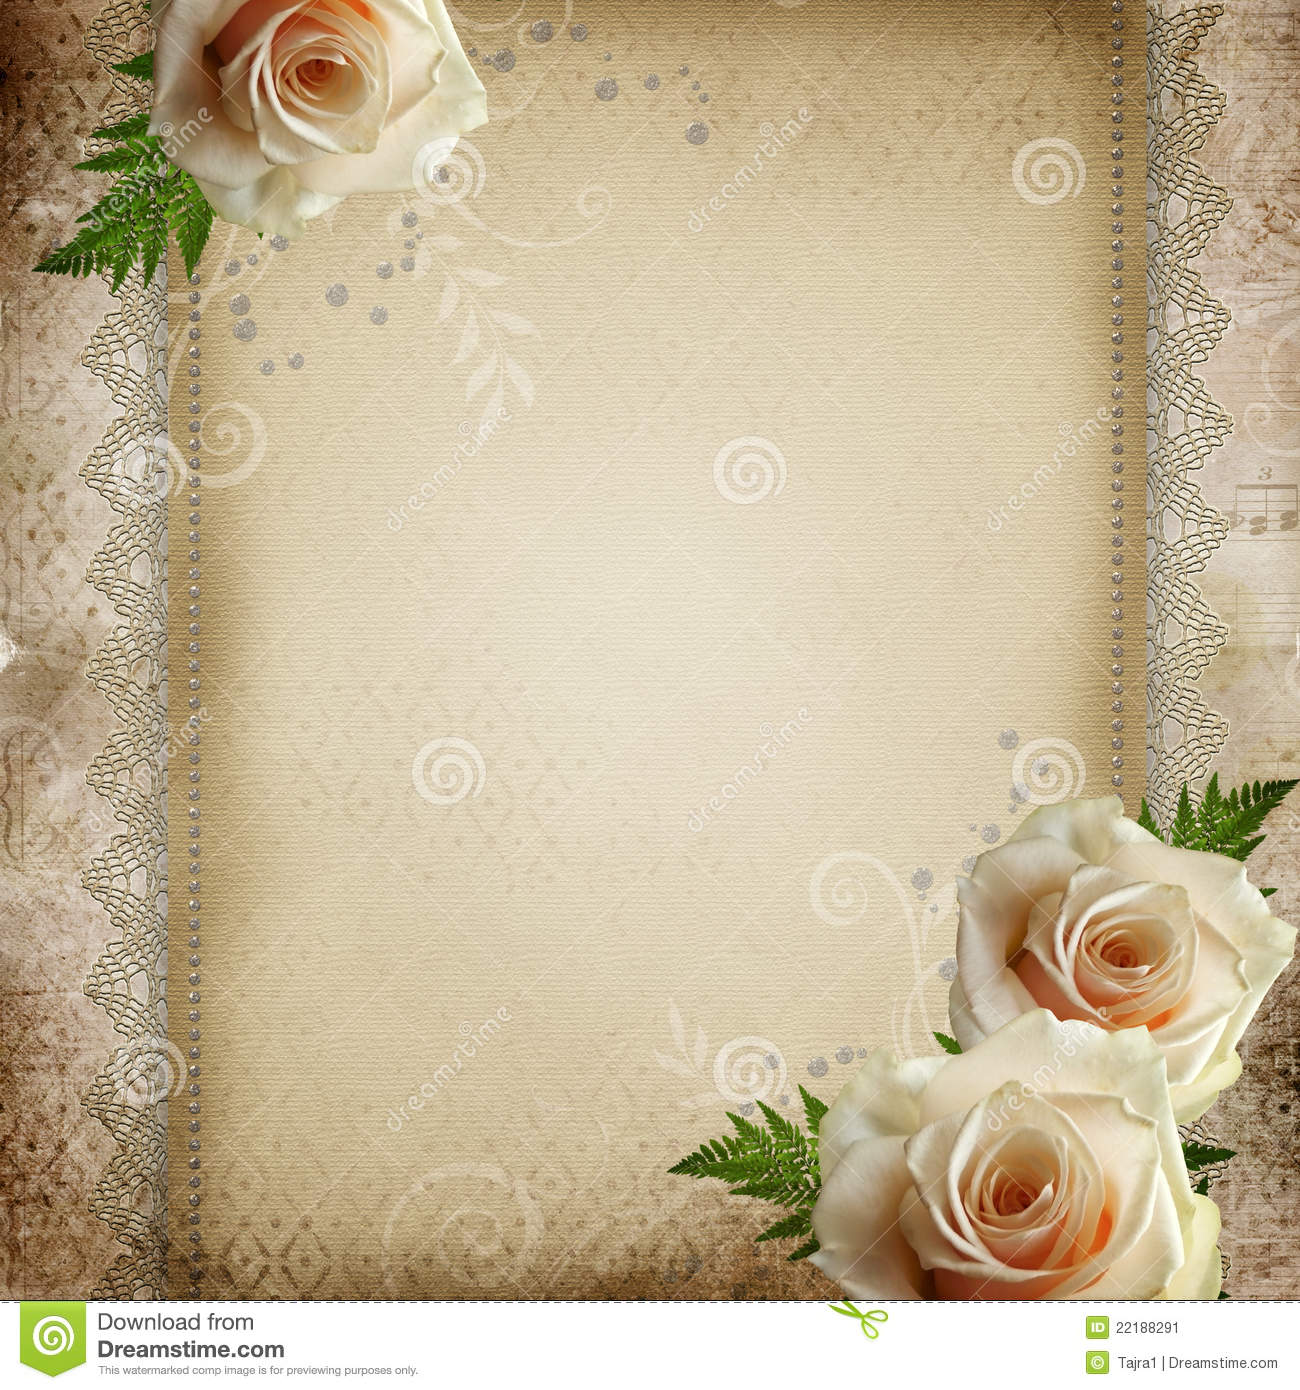 Vintage Beautiful Background Stock Image Image 22188291